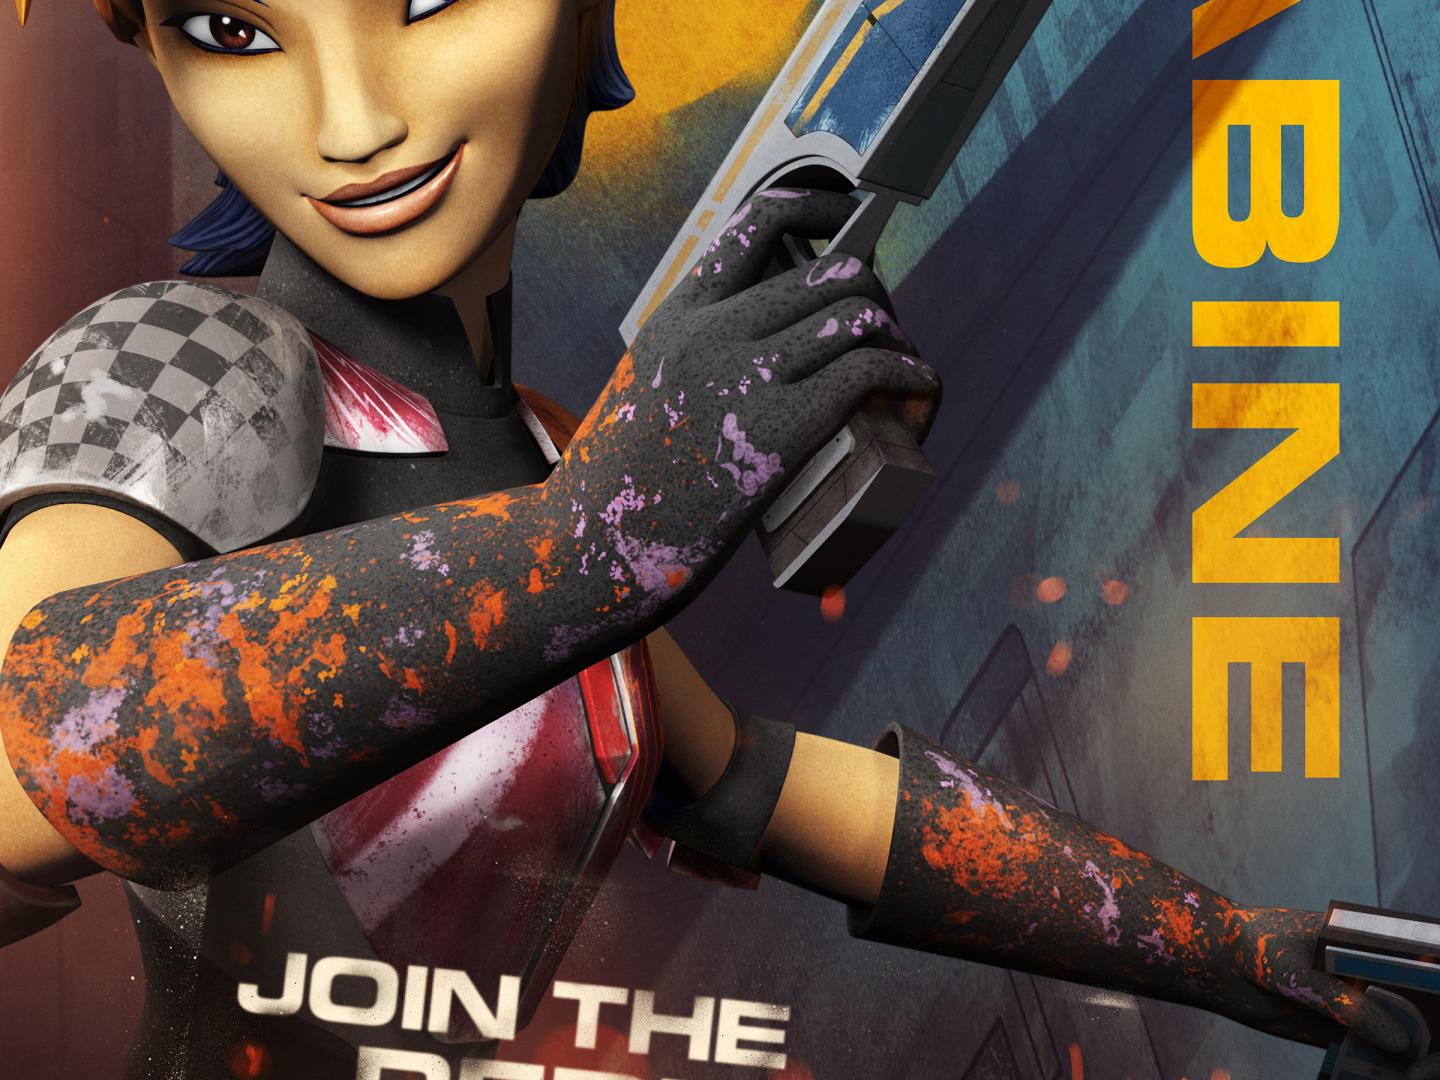 Image for Character Sabine